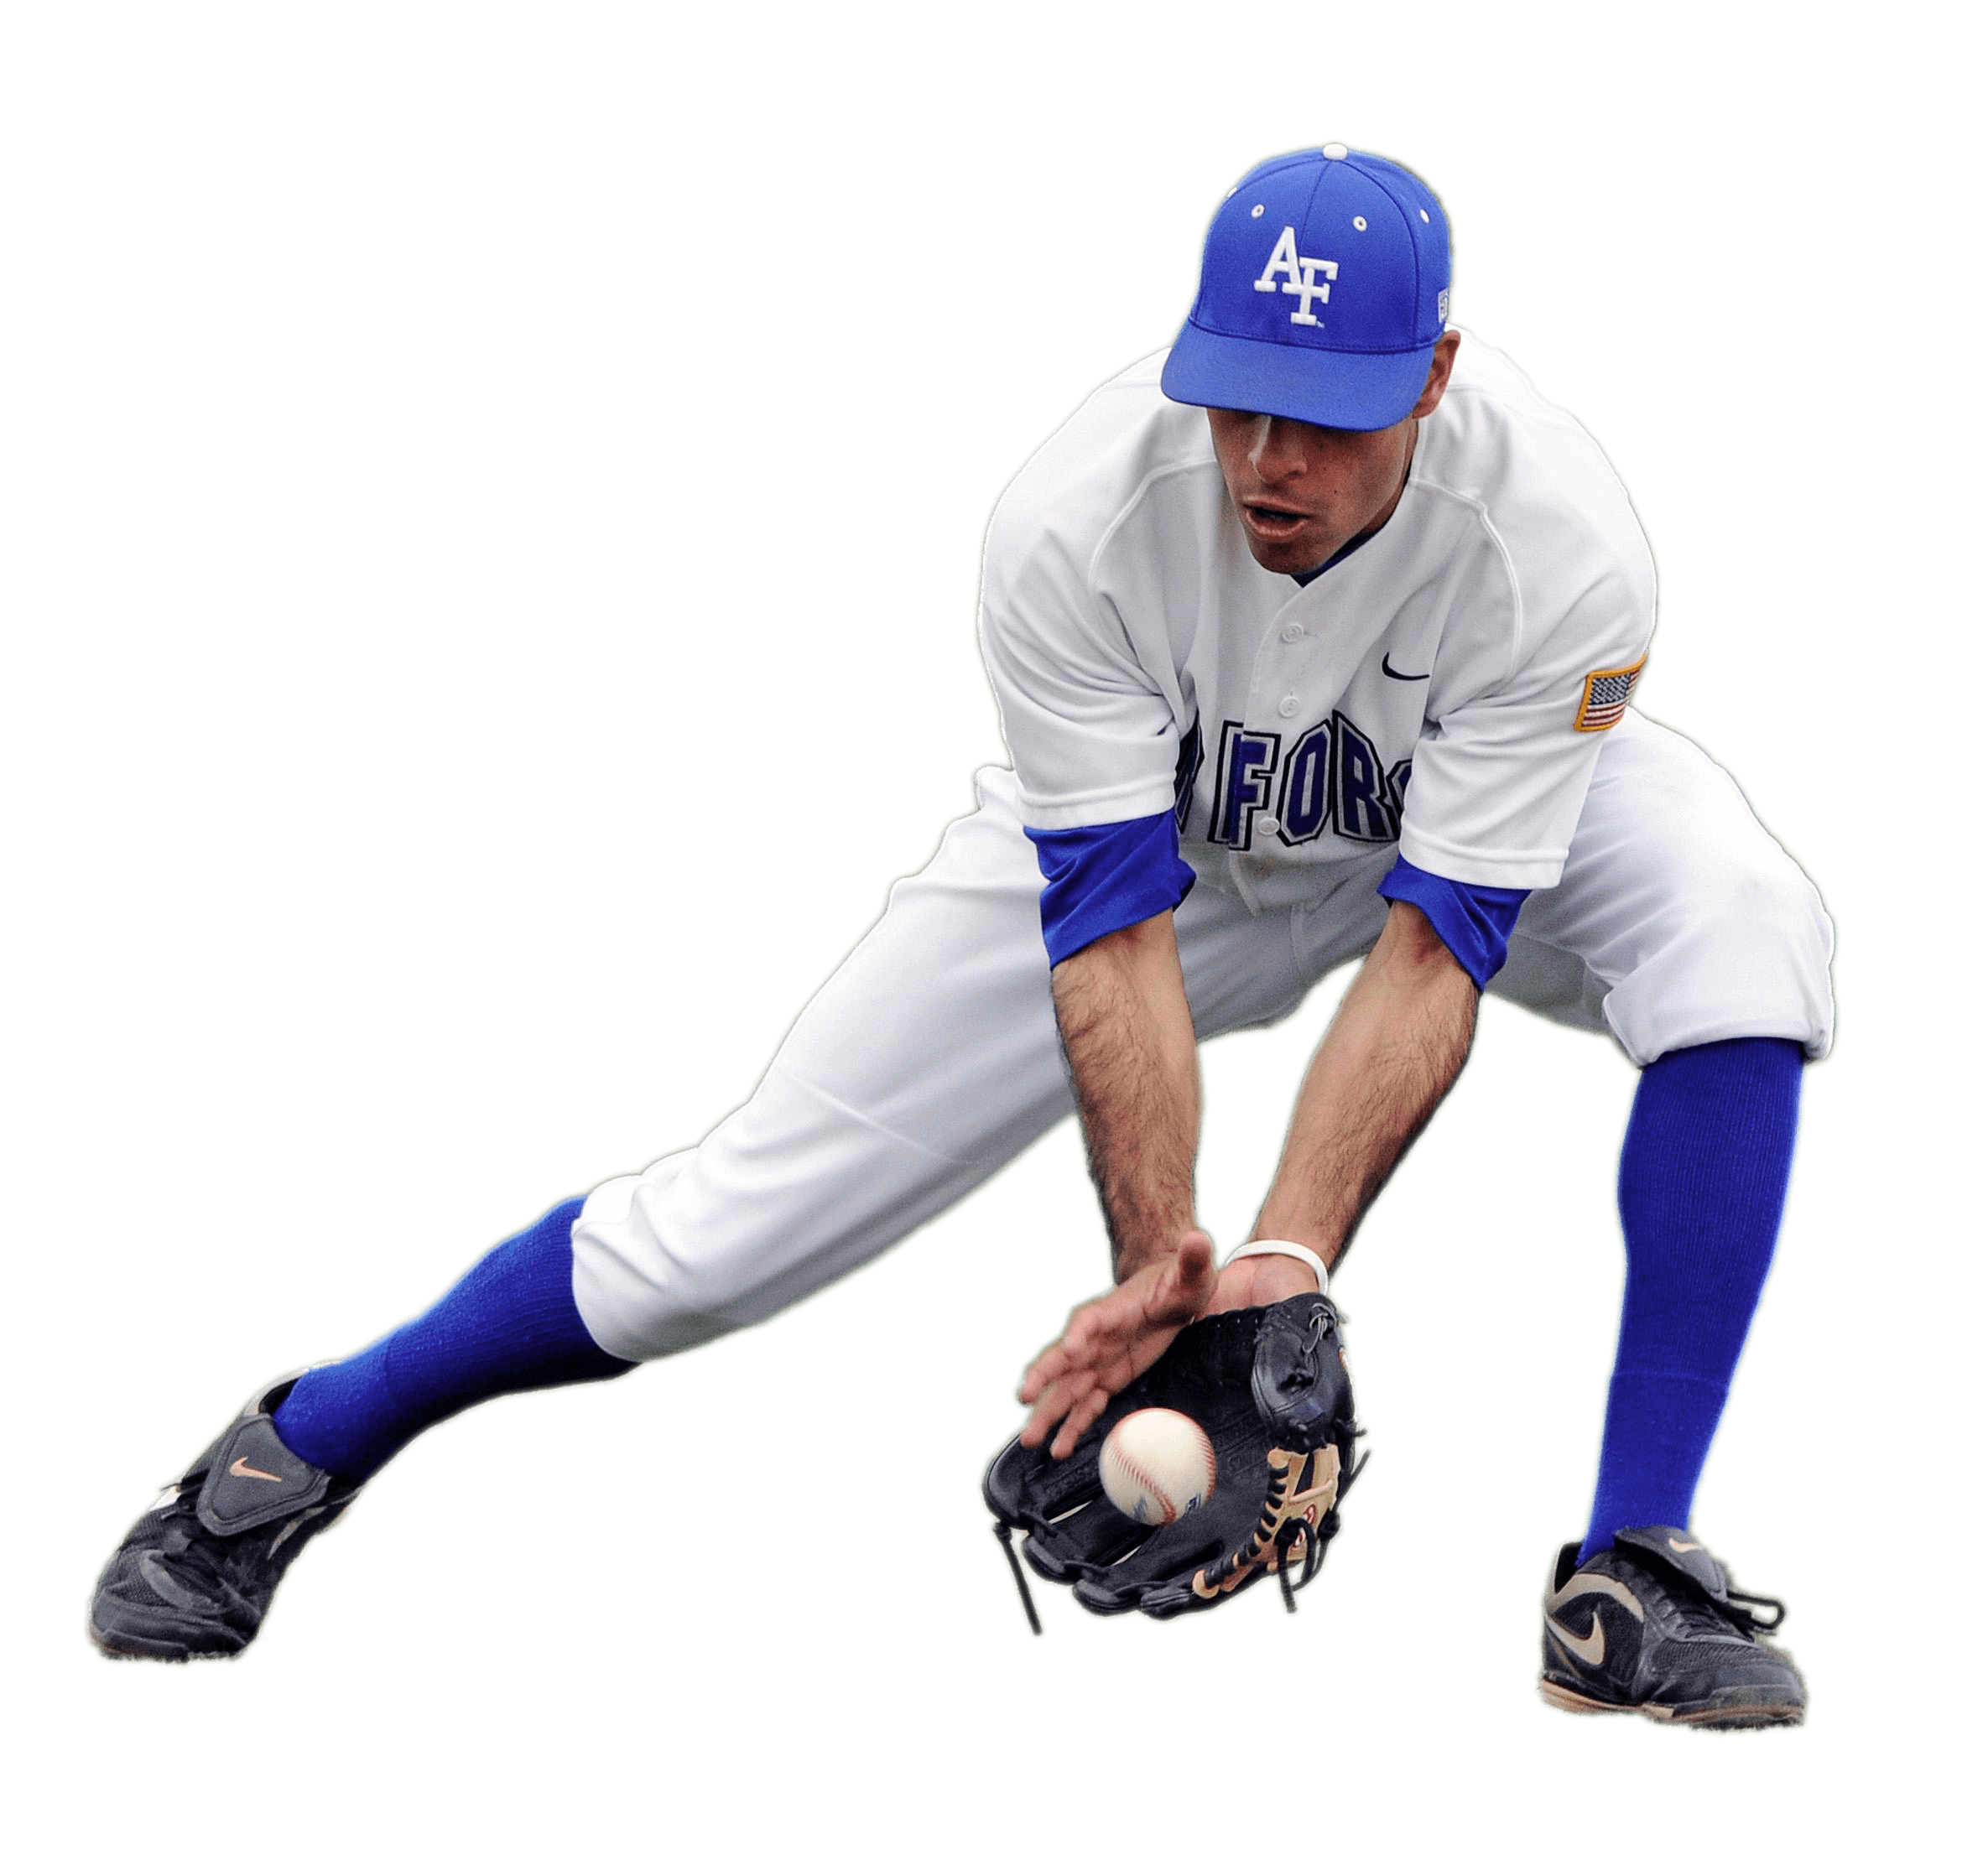 Baseball player player clipart svg transparent library Baseball Player Catching Low Ball transparent PNG - StickPNG svg transparent library